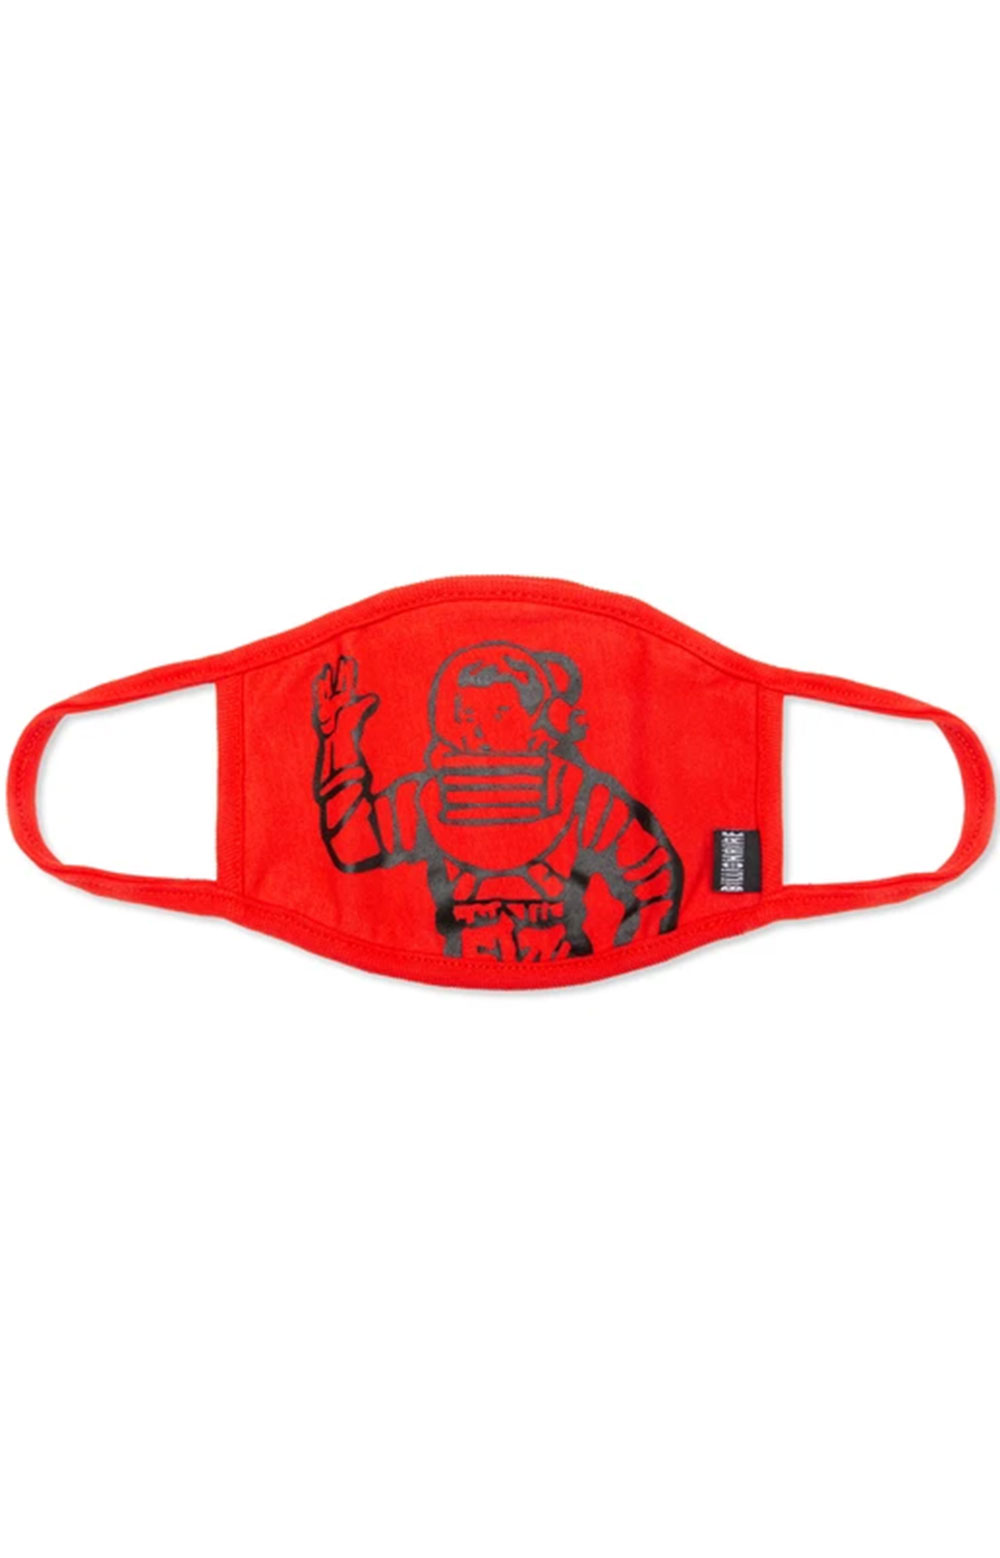 BB Astro Mask - High Risk Red